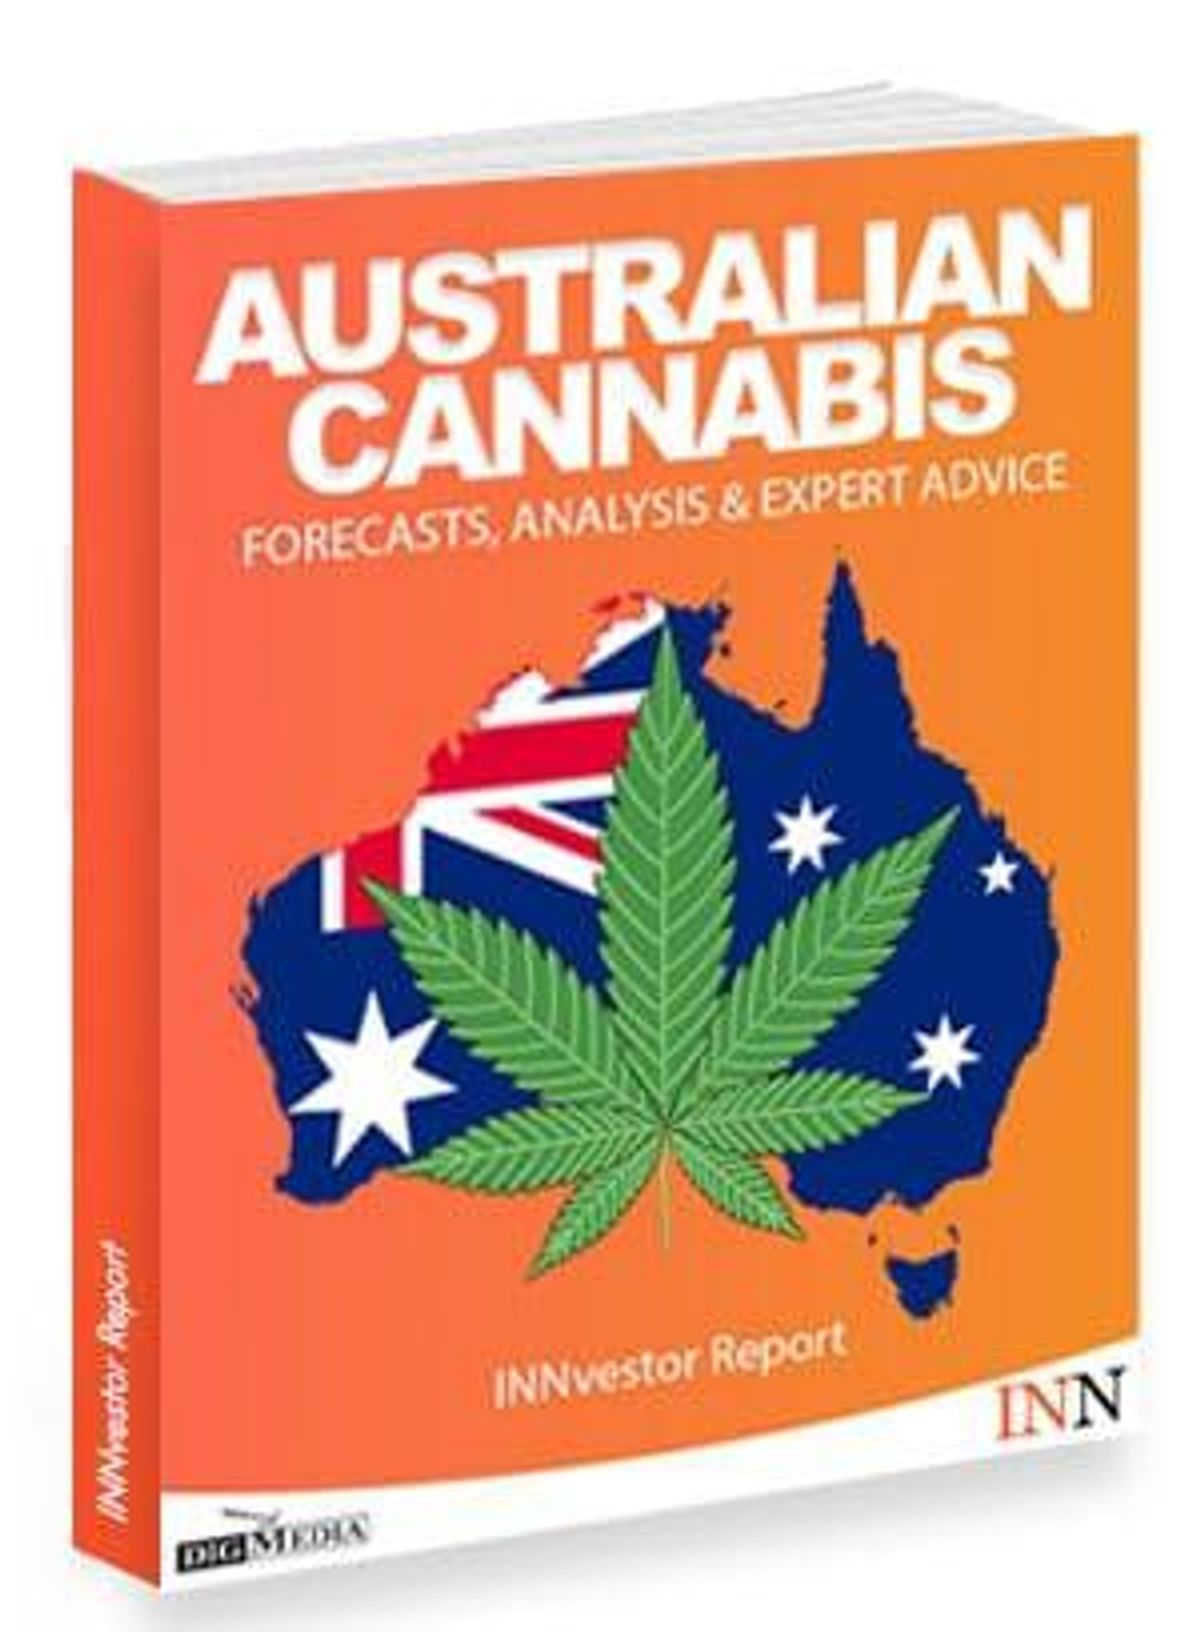 Australian Cannabis: Forecasts, Analysis and Expert Advice